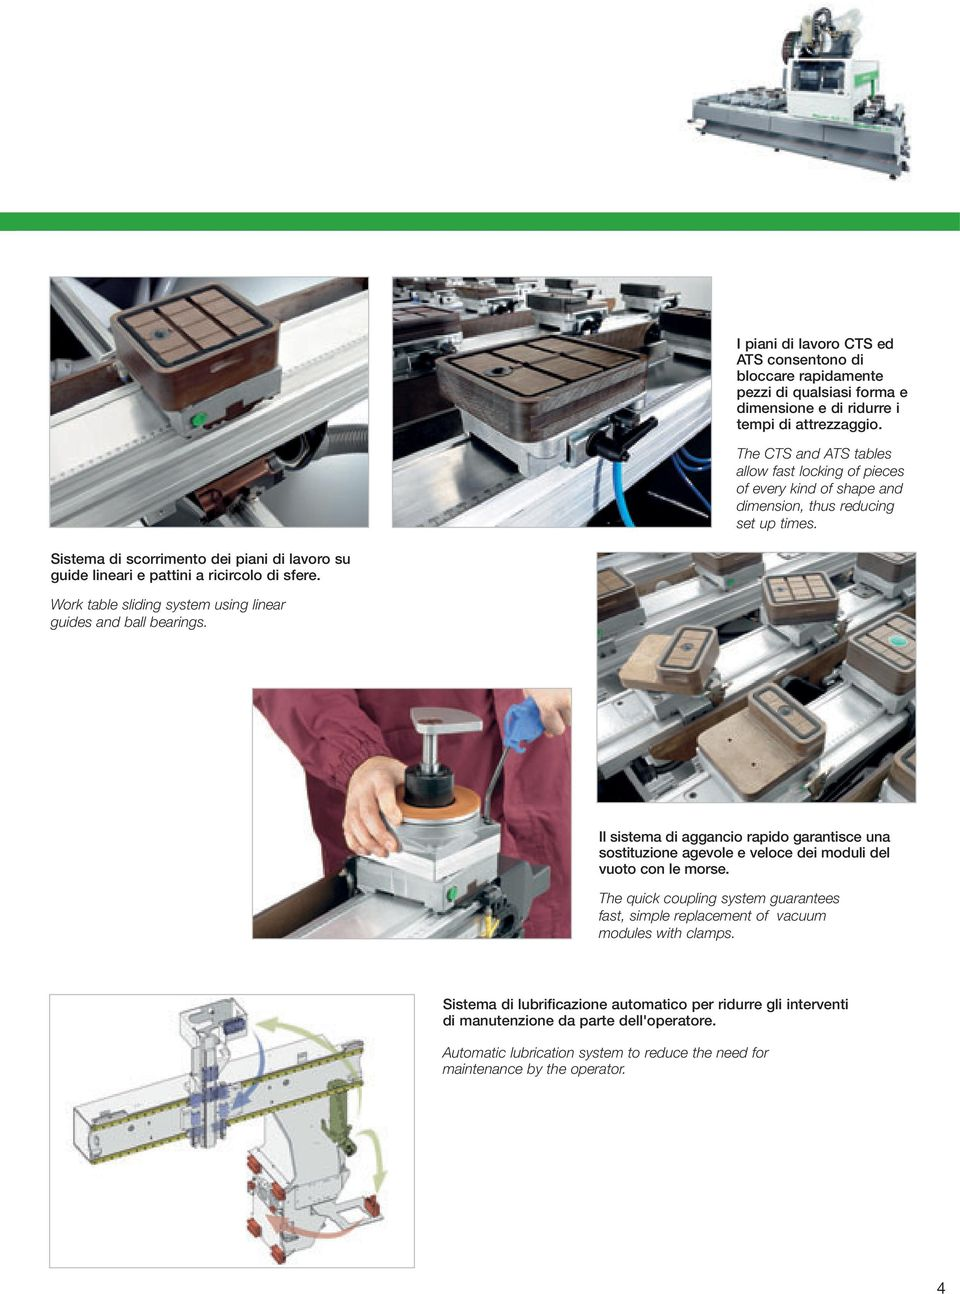 Sistema di scorrimento dei piani di lavoro su guide lineari e pattini a ricircolo di sfere. Work table sliding system using linear guides and ball bearings.